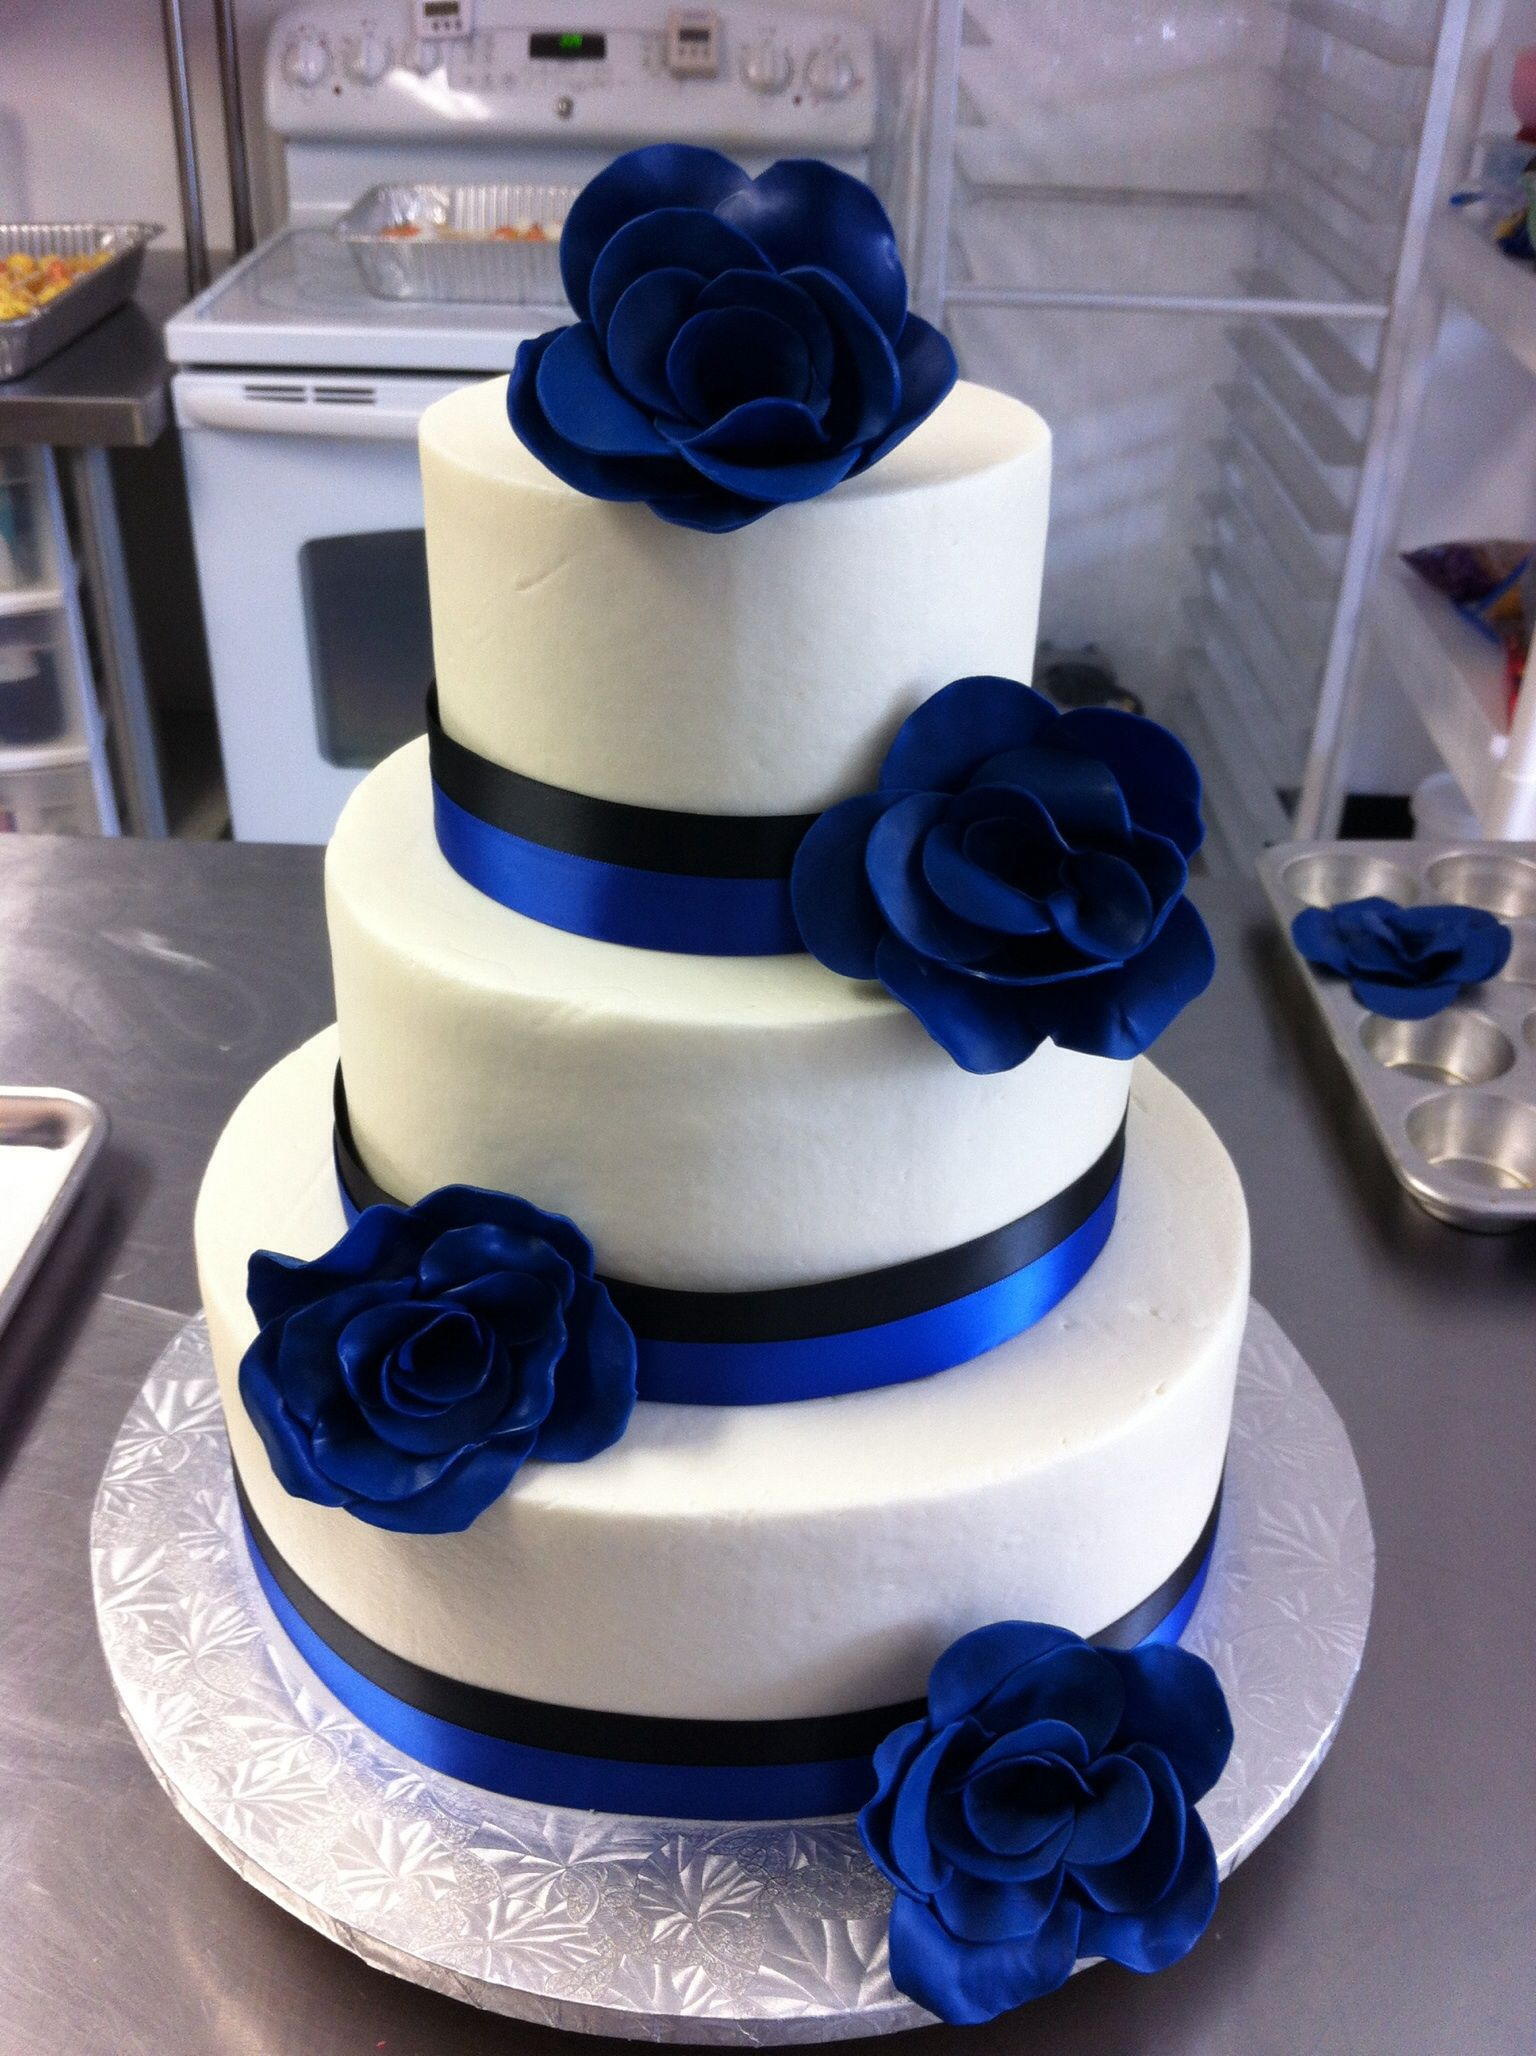 Royal Blue & Black Wedding Cake